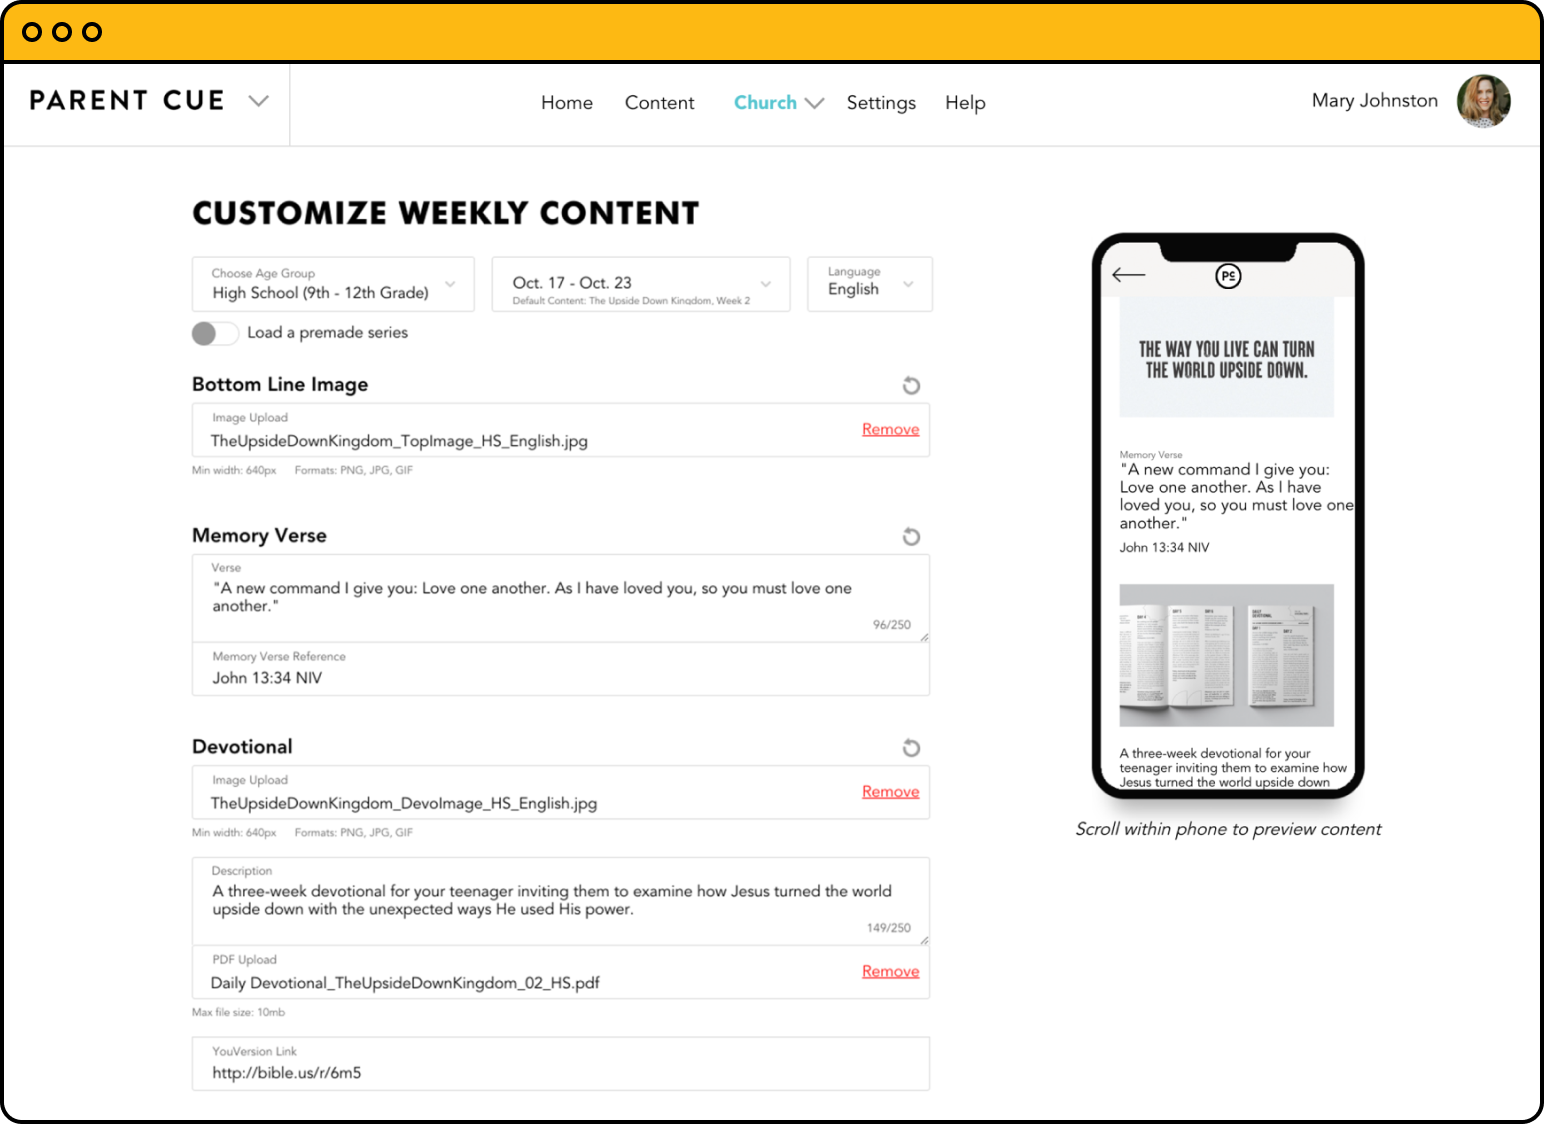 Orange curriculum sets the bar high for weekly discipleship content, and intuitive design makes updating and customizing content easier than ever before.